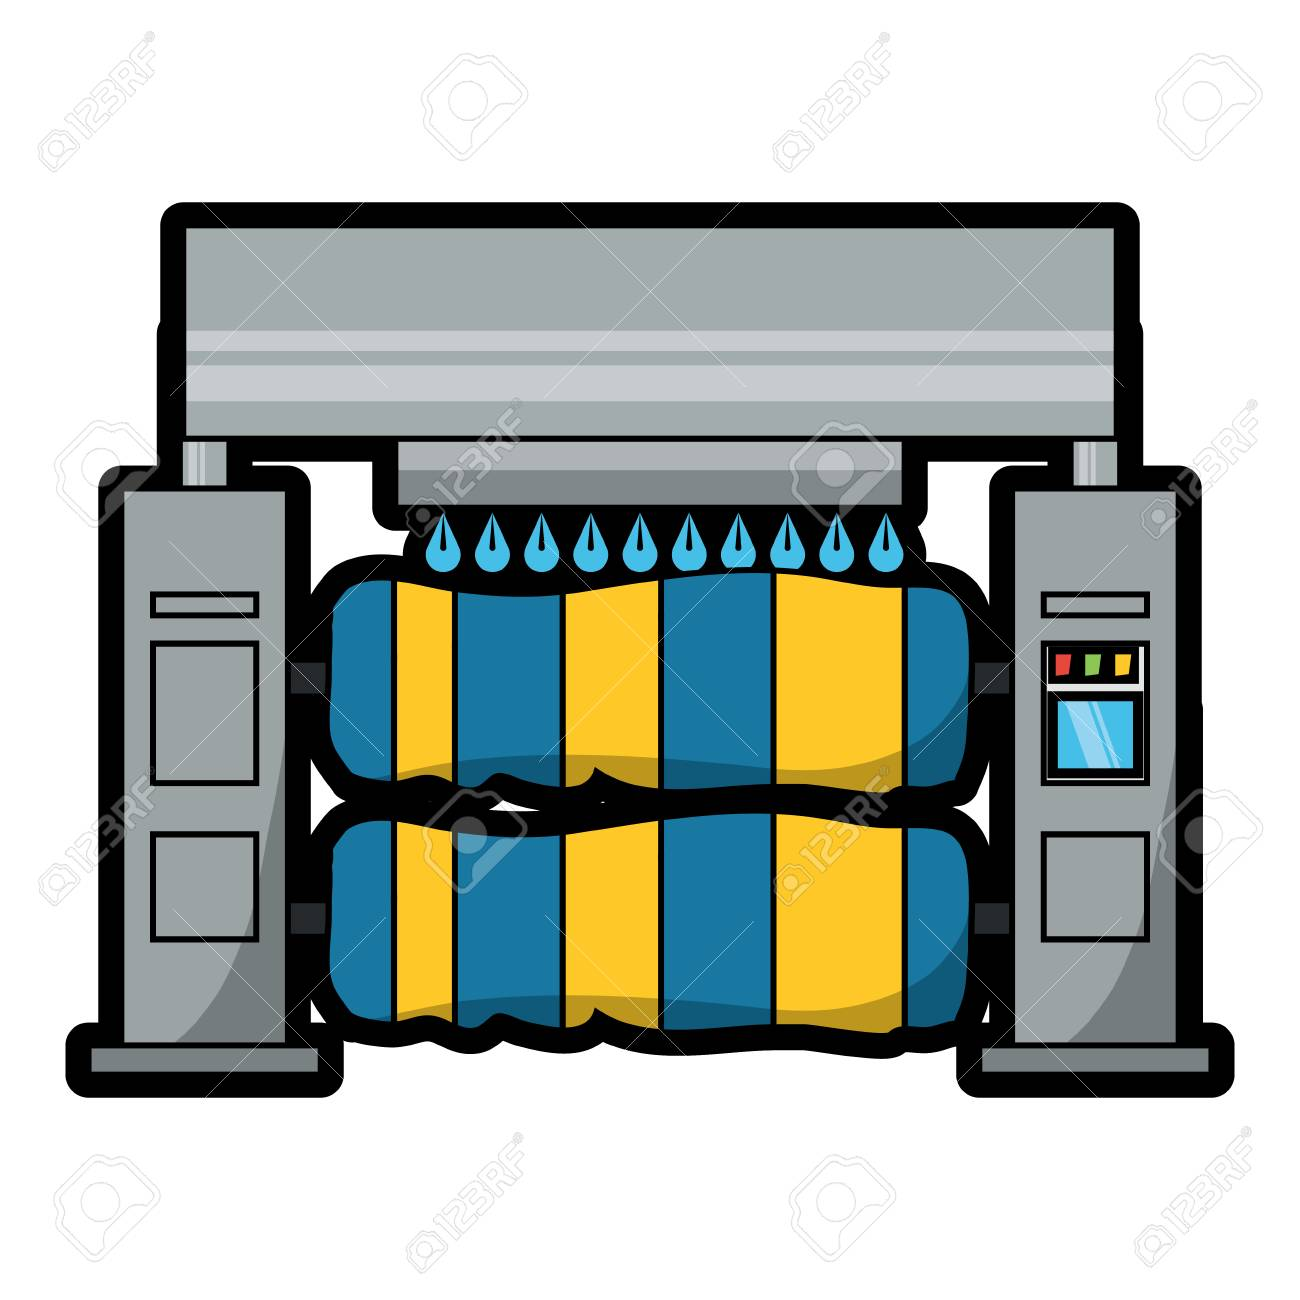 hight resolution of car wash machine icon over white background colorful design vector illustration stock vector 92397992